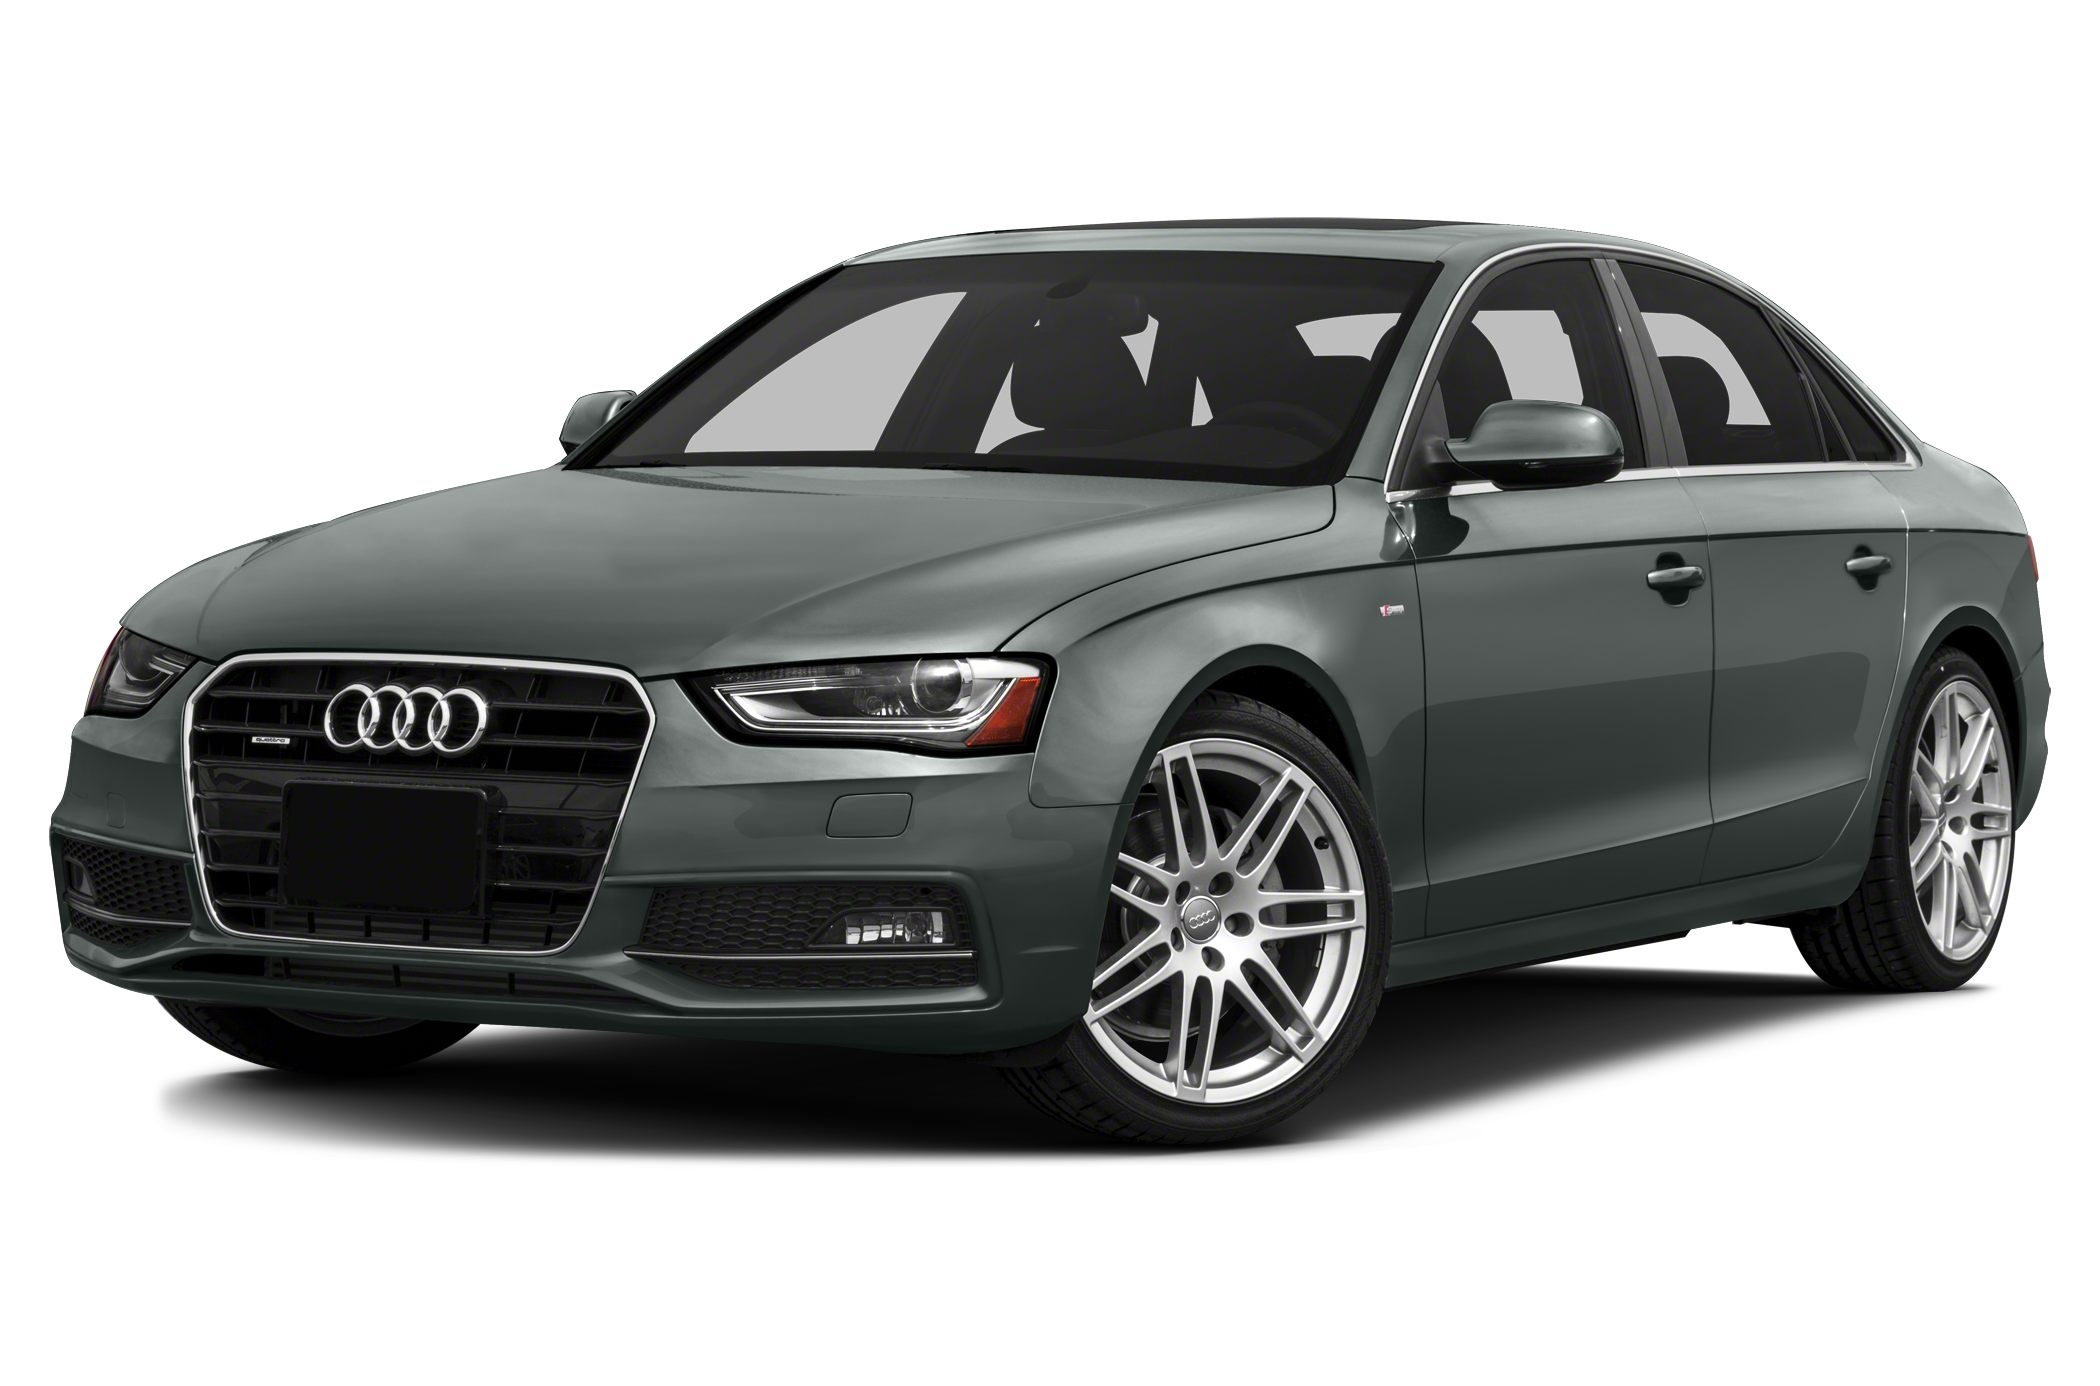 2014 audi a4 safety features